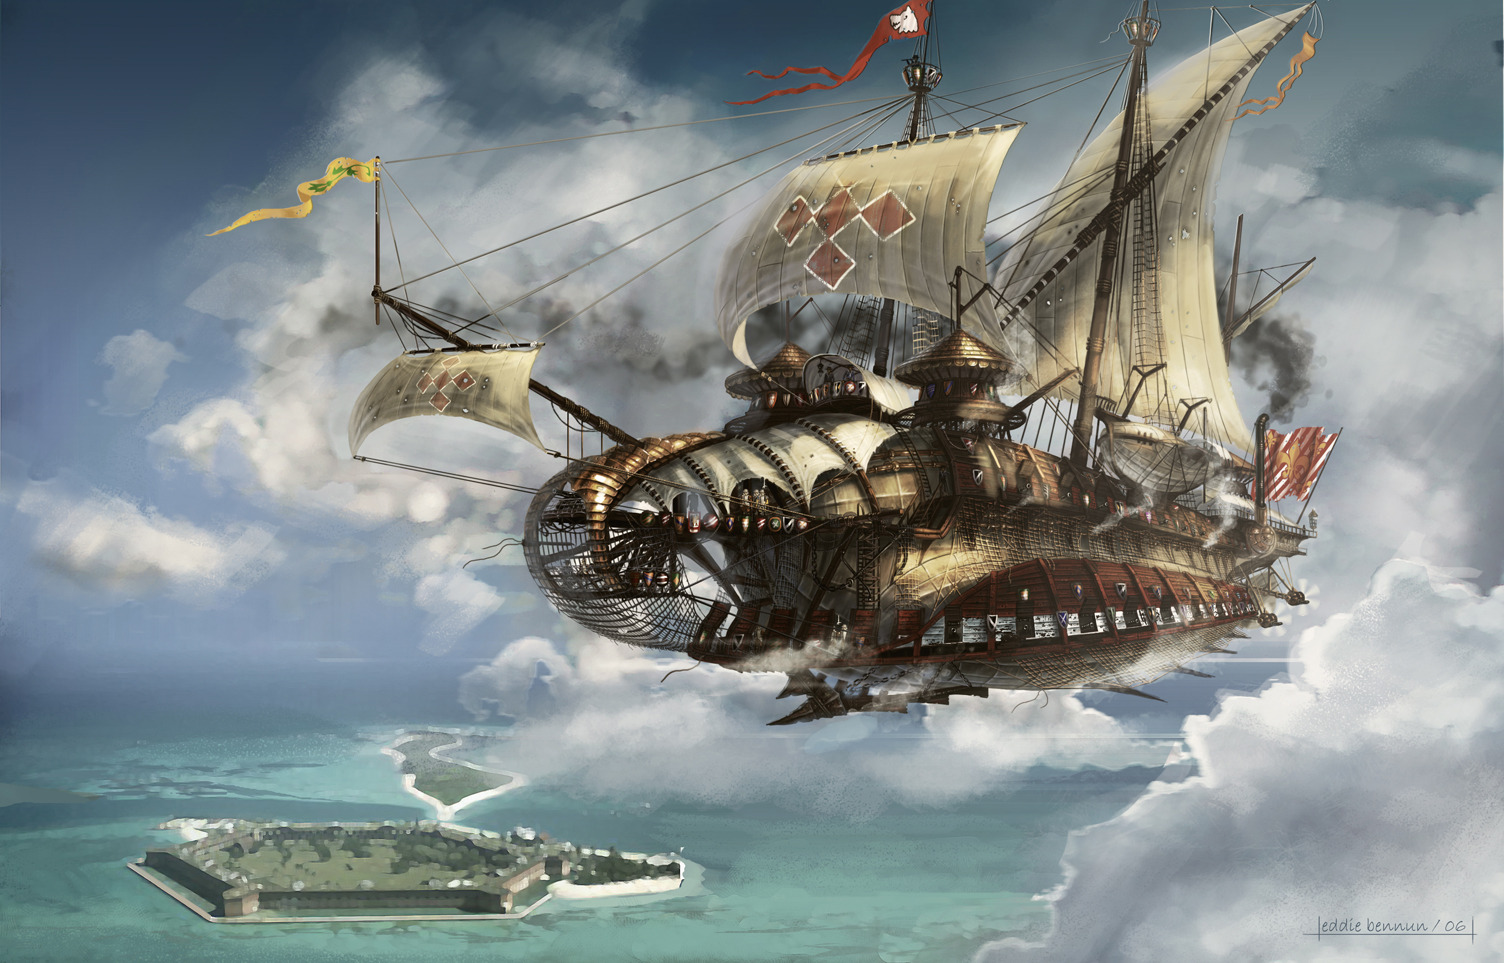 1504x963_19507_Ship_of_the_line_2d_fantasy_airship_picture_image_digital_art.jpg